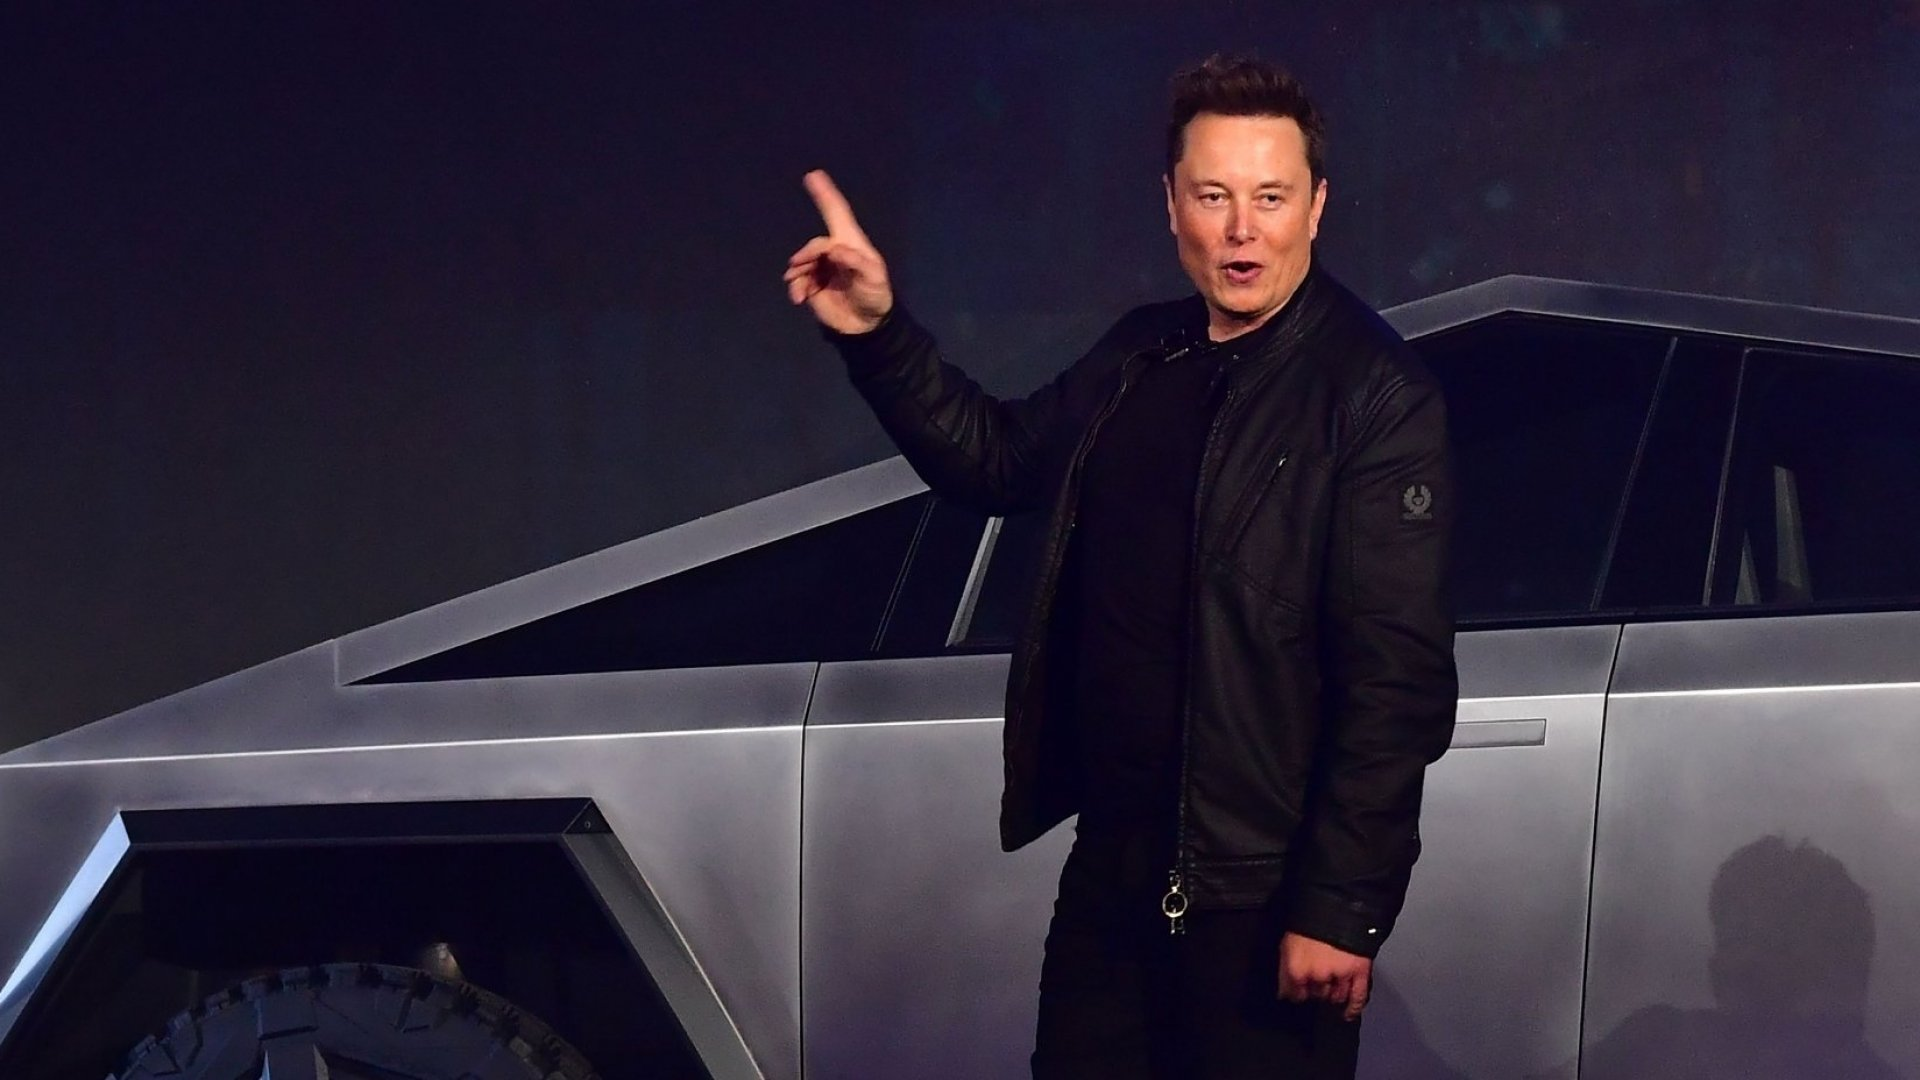 Elon Musk with the Tesla Cybertruck.